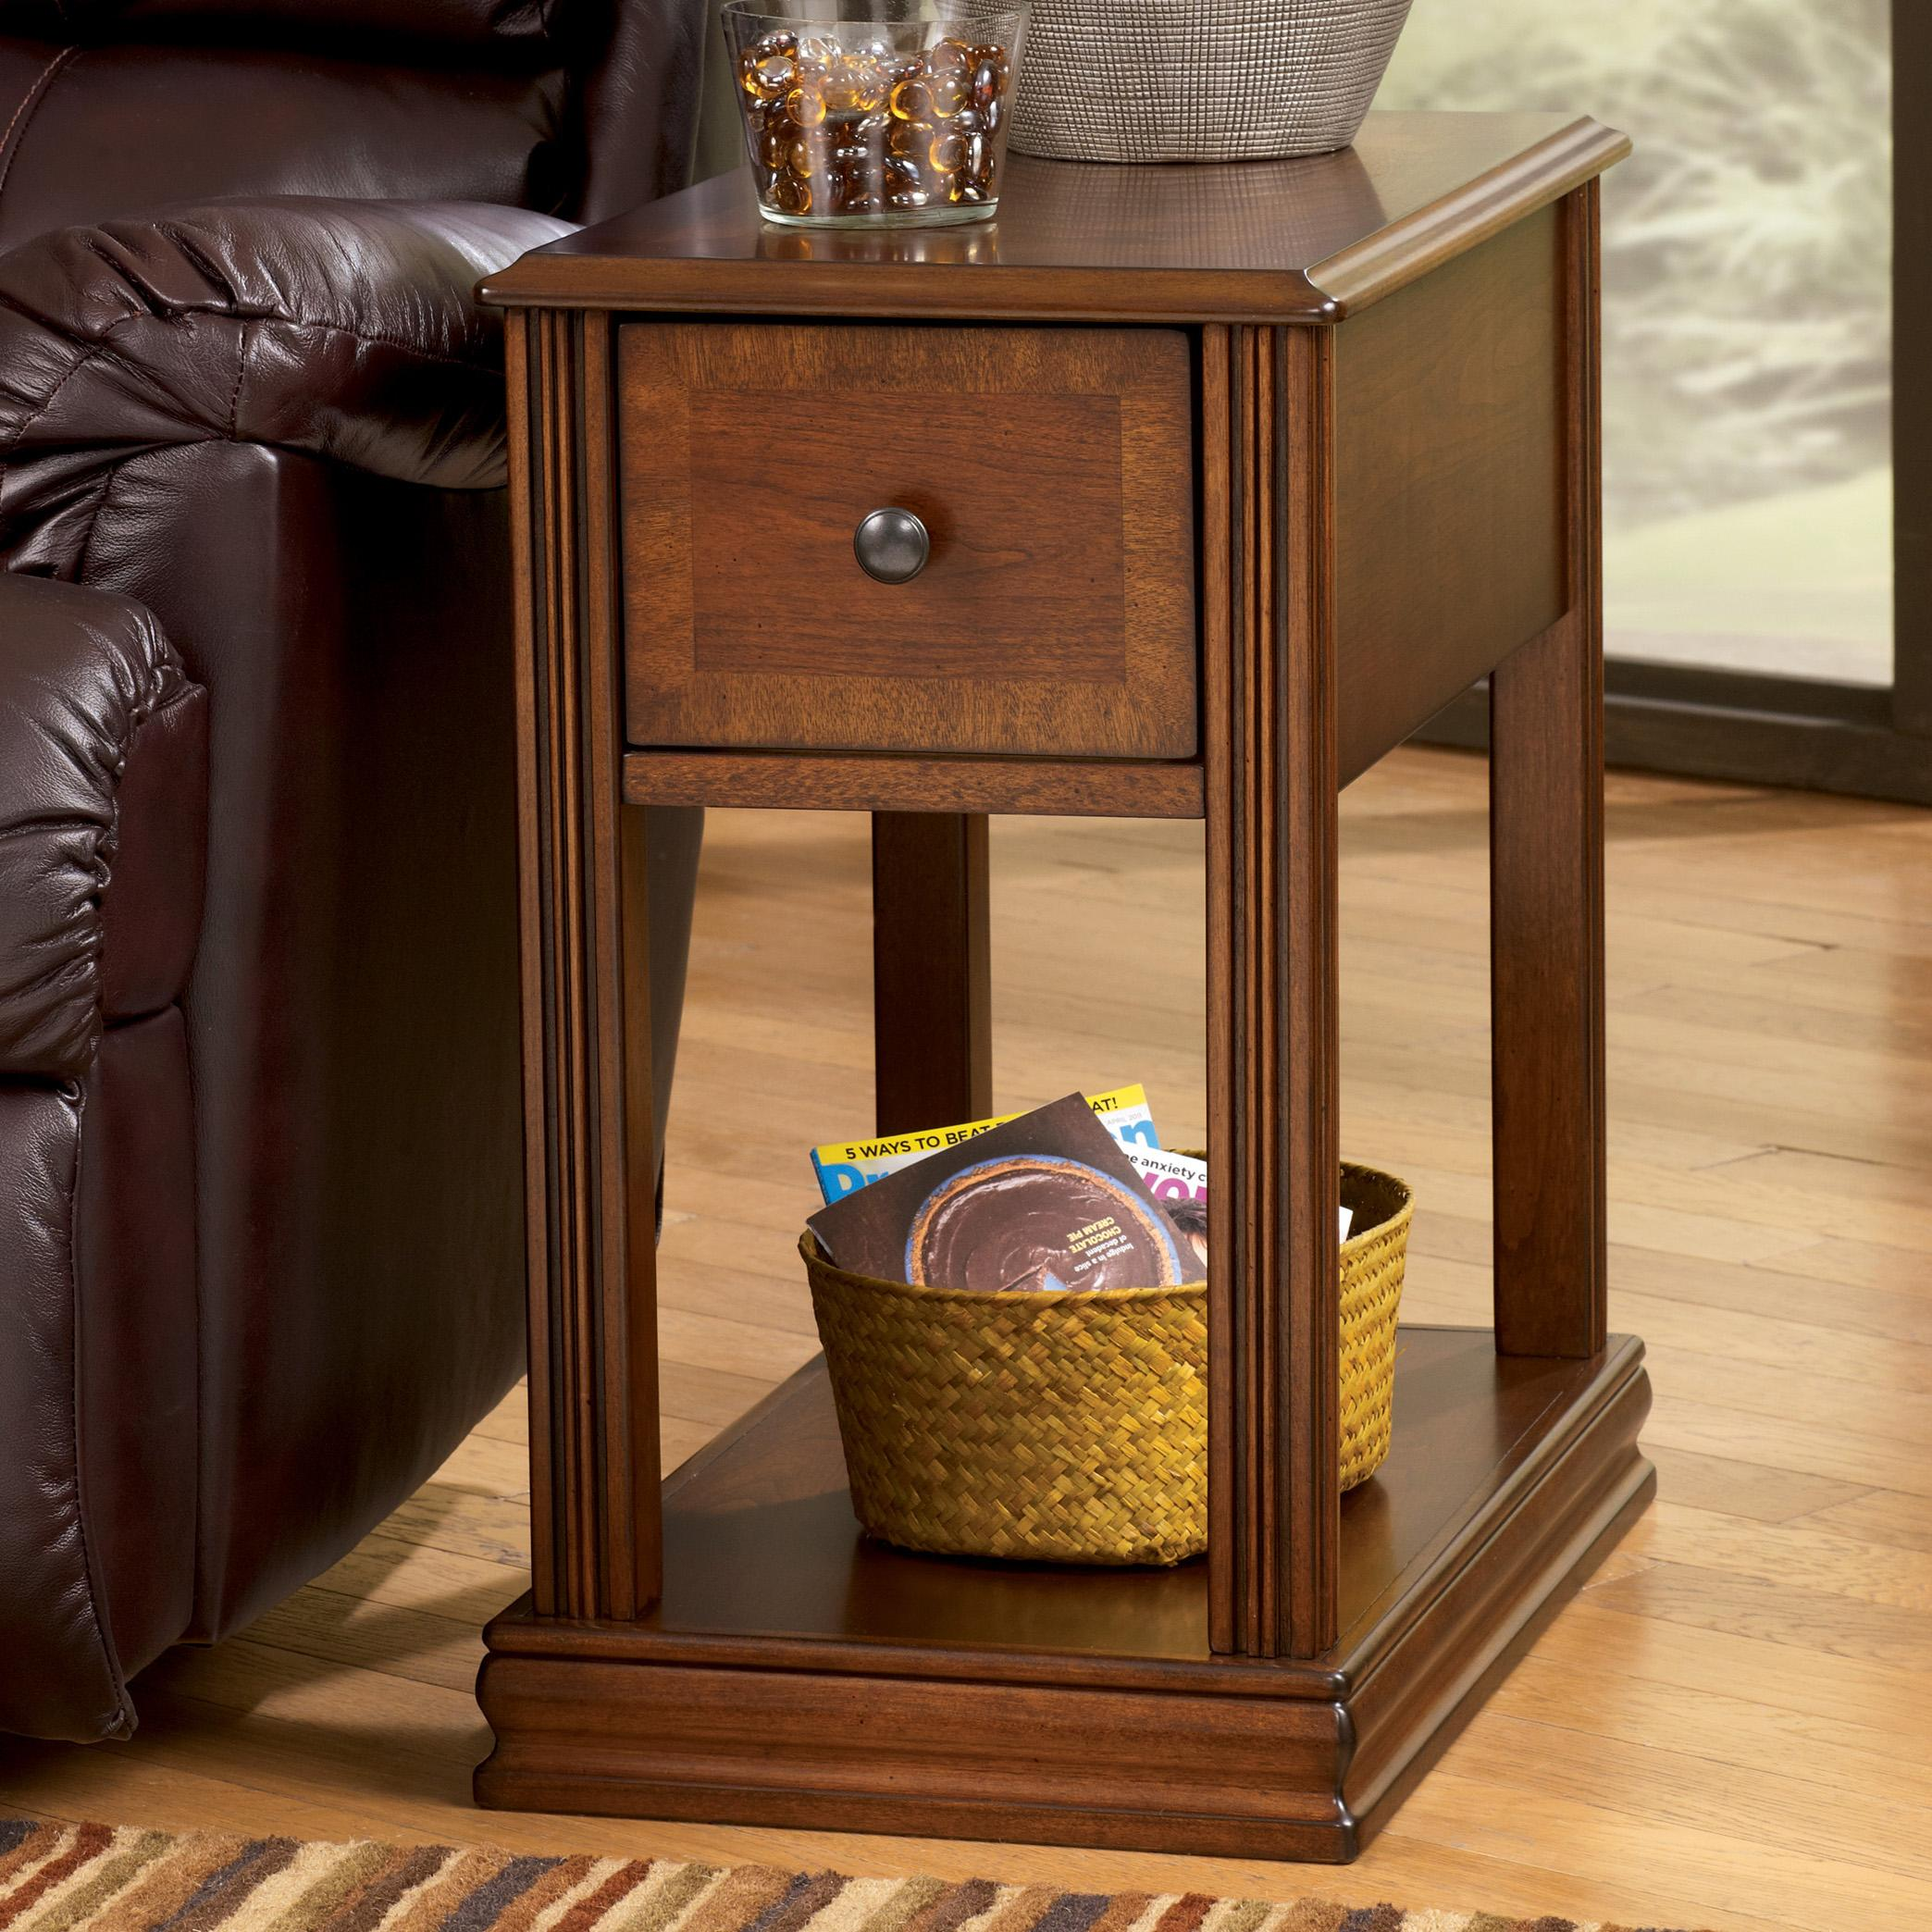 Brown Moulded Hamlyn Chairside End Table with Slide Board